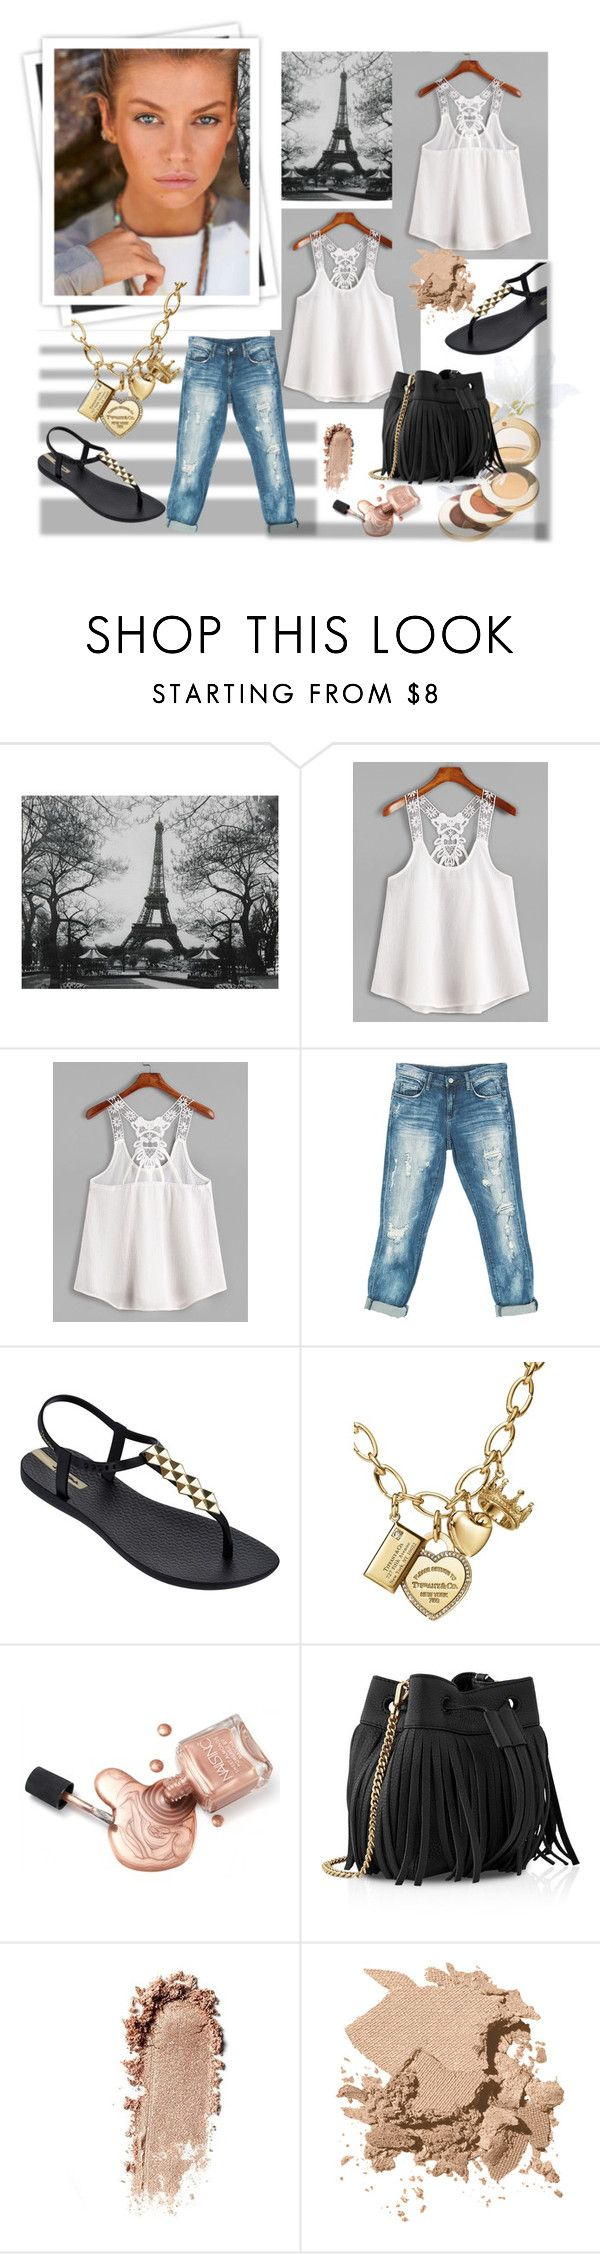 """""""White Contrast Lace Crochet Cami Top"""" by marija-1987 ❤ liked on Polyvore featuring WALL, GALA, Sans Souci, IPANEMA, Tiffany & Co., Jane Iredale, Whistles and Bobbi Brown Cosmetics"""